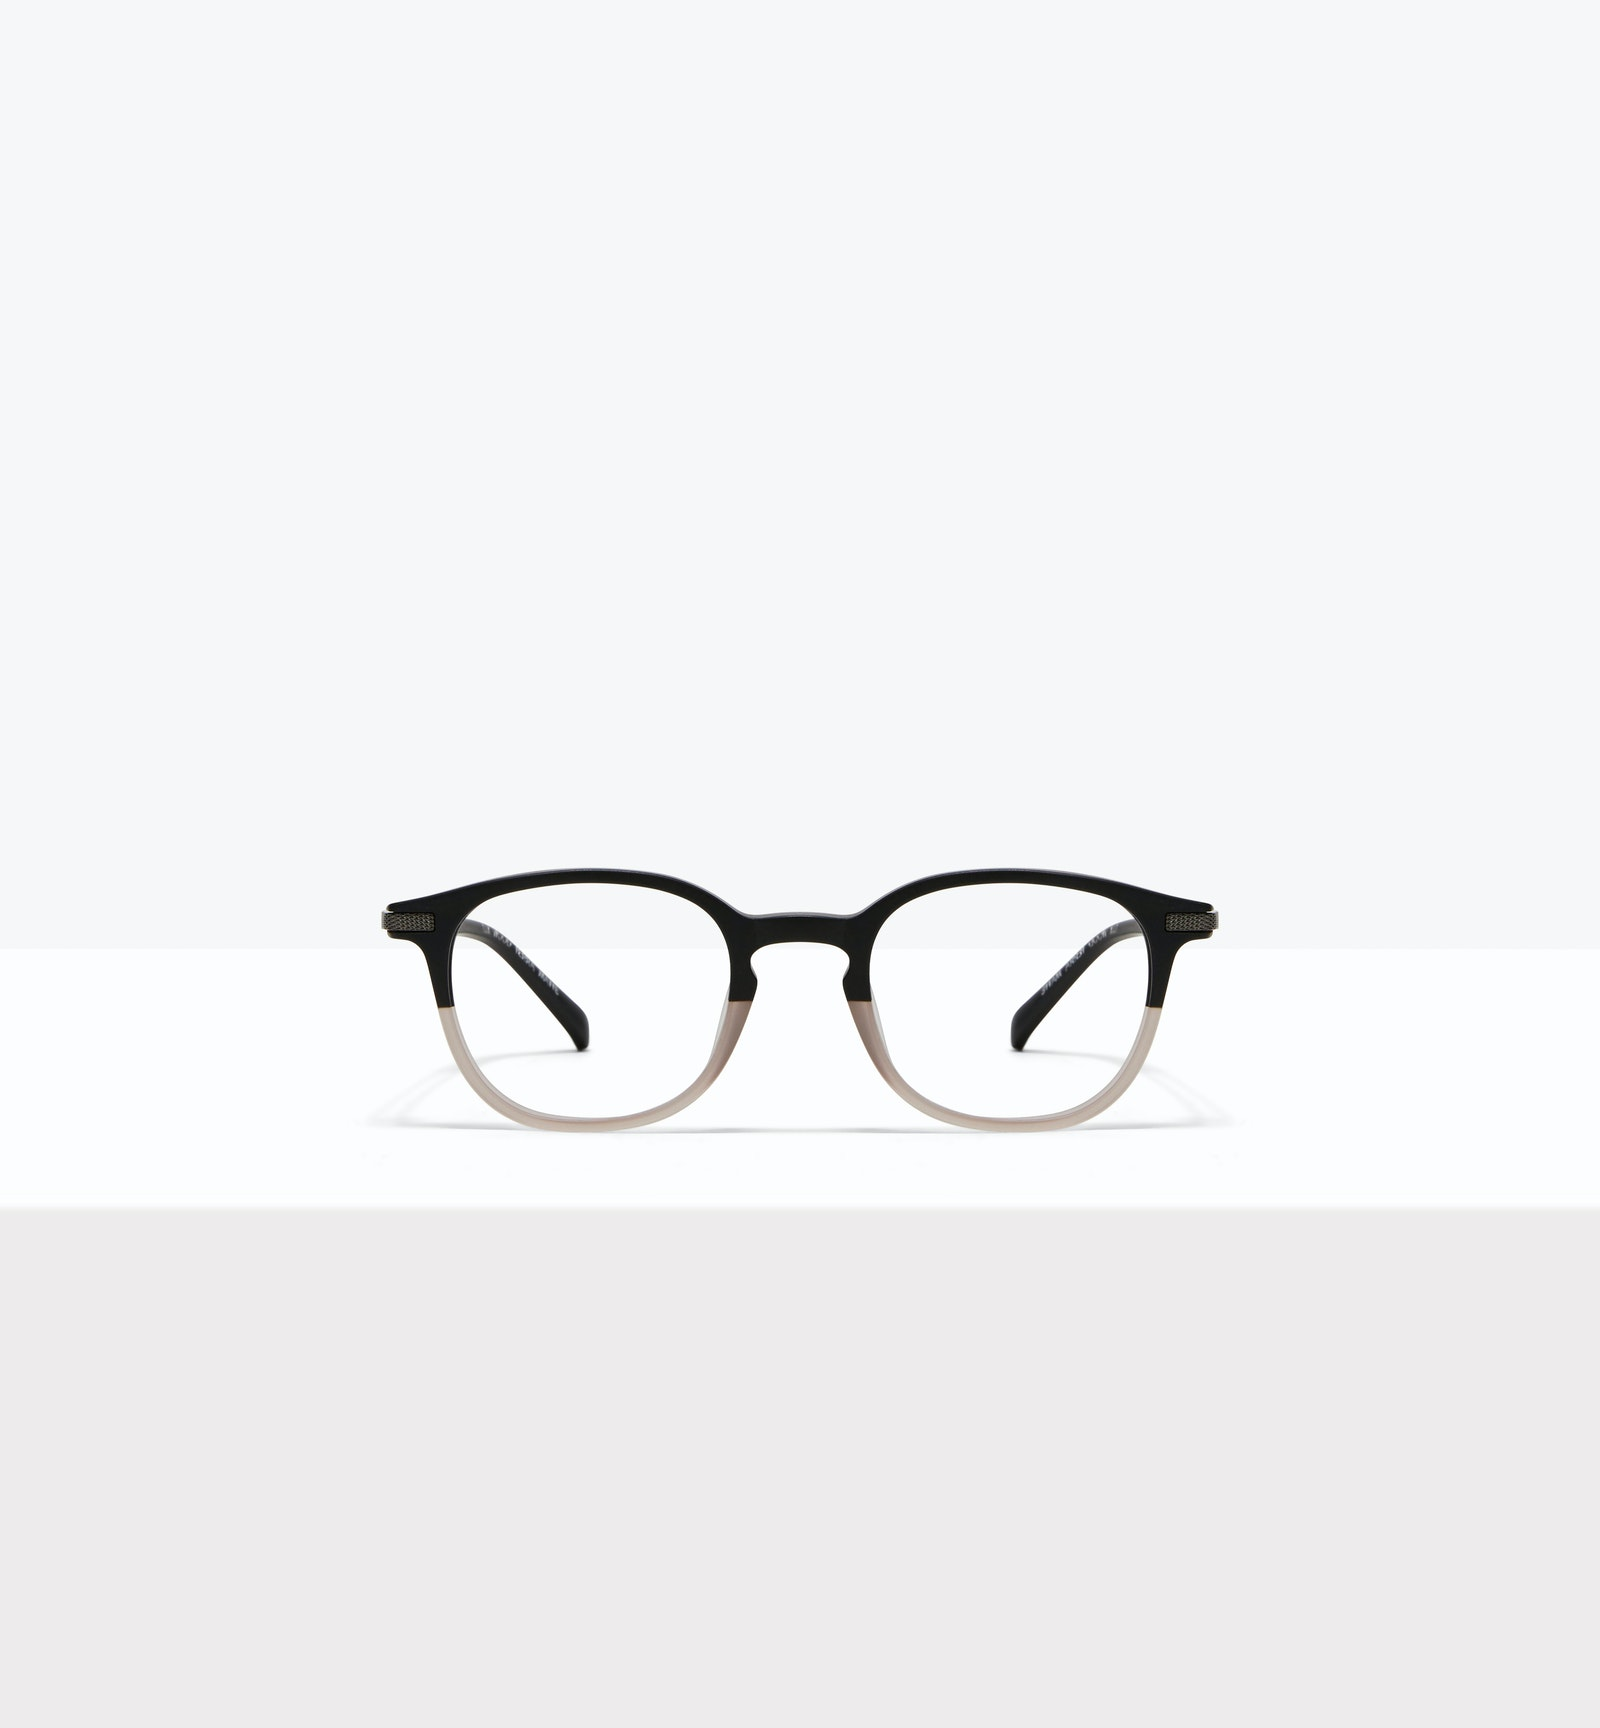 Affordable Fashion Glasses Round Eyeglasses Men Tux Wood Terra Matte